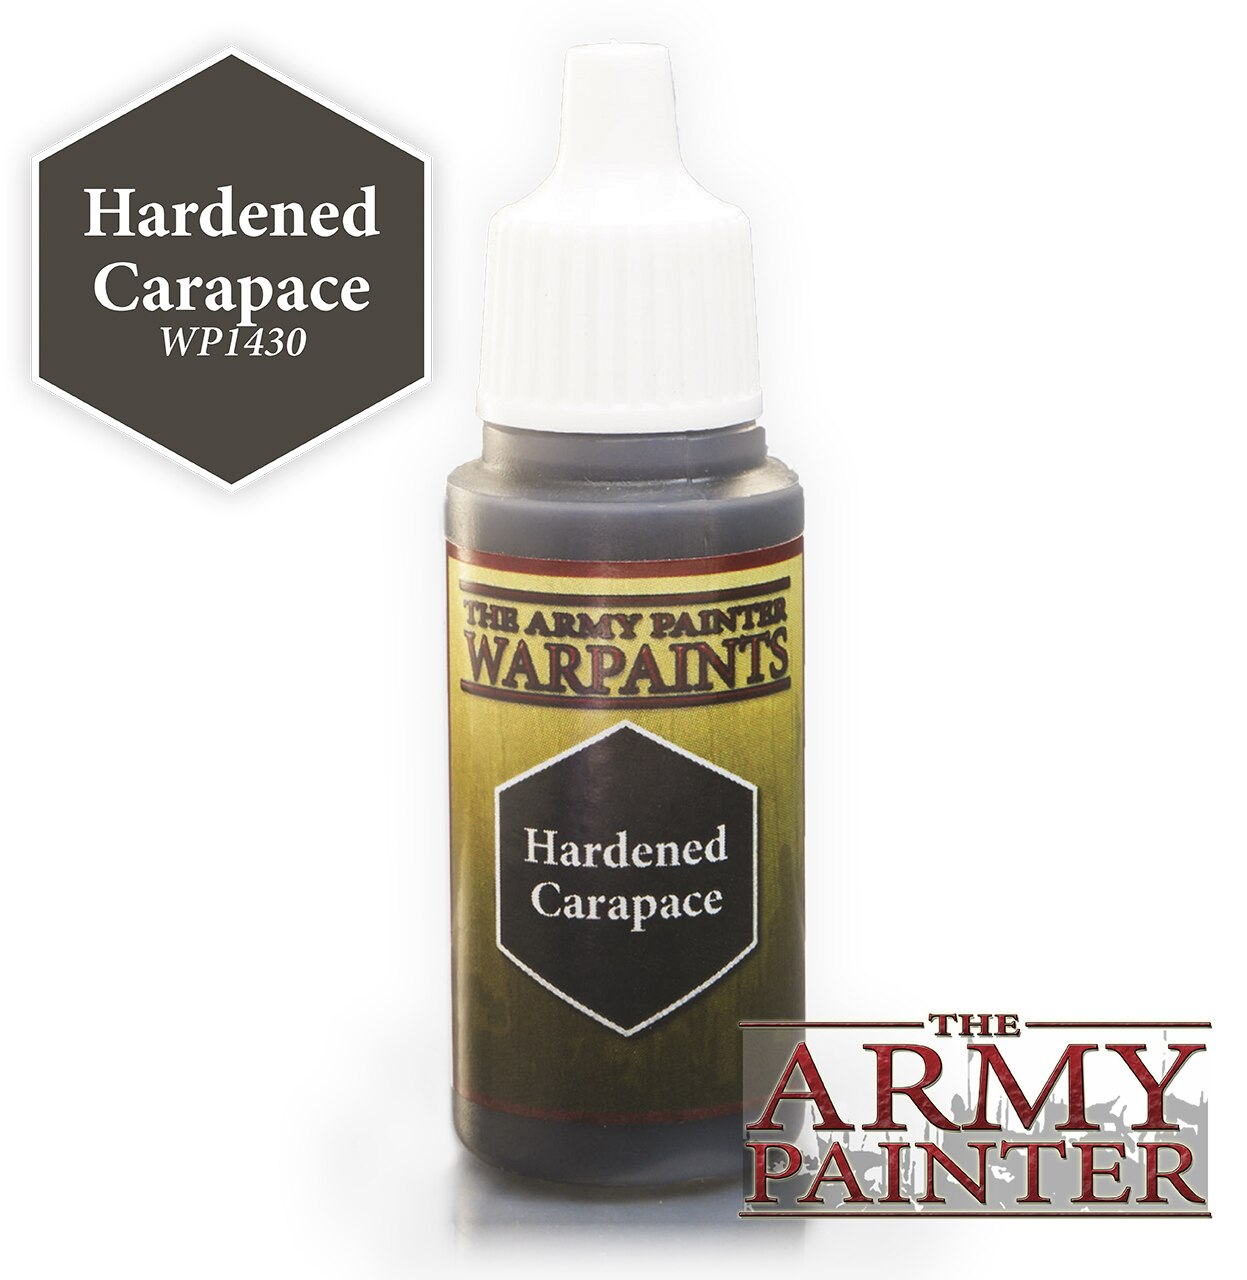 Army Painter Warpaint - Hardened Carapace